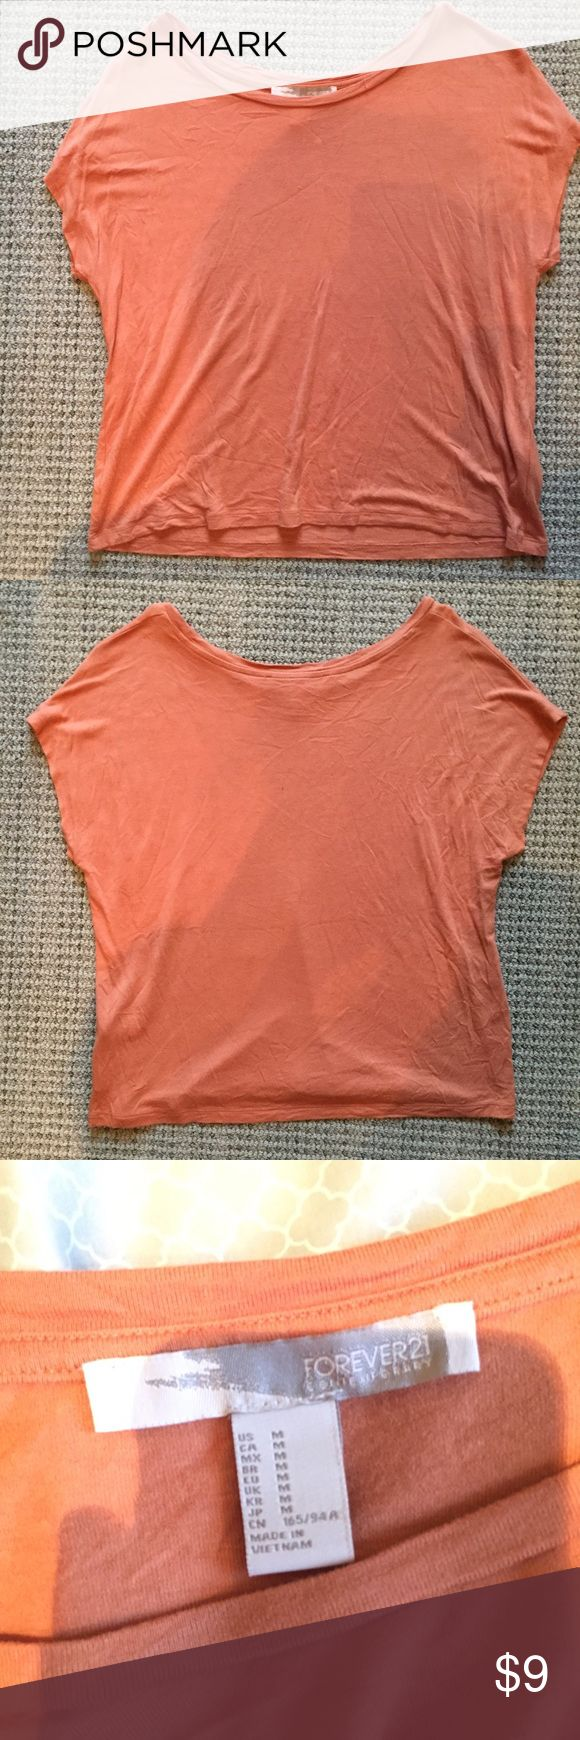 Orange Short Sleeve Top Very soft and comfortable orange short sleeve top. Kind of a boxy/cropped fit. Perfect for summer time or under a cardigan. Only worn once! Forever 21 Tops Tees - Short Sleeve